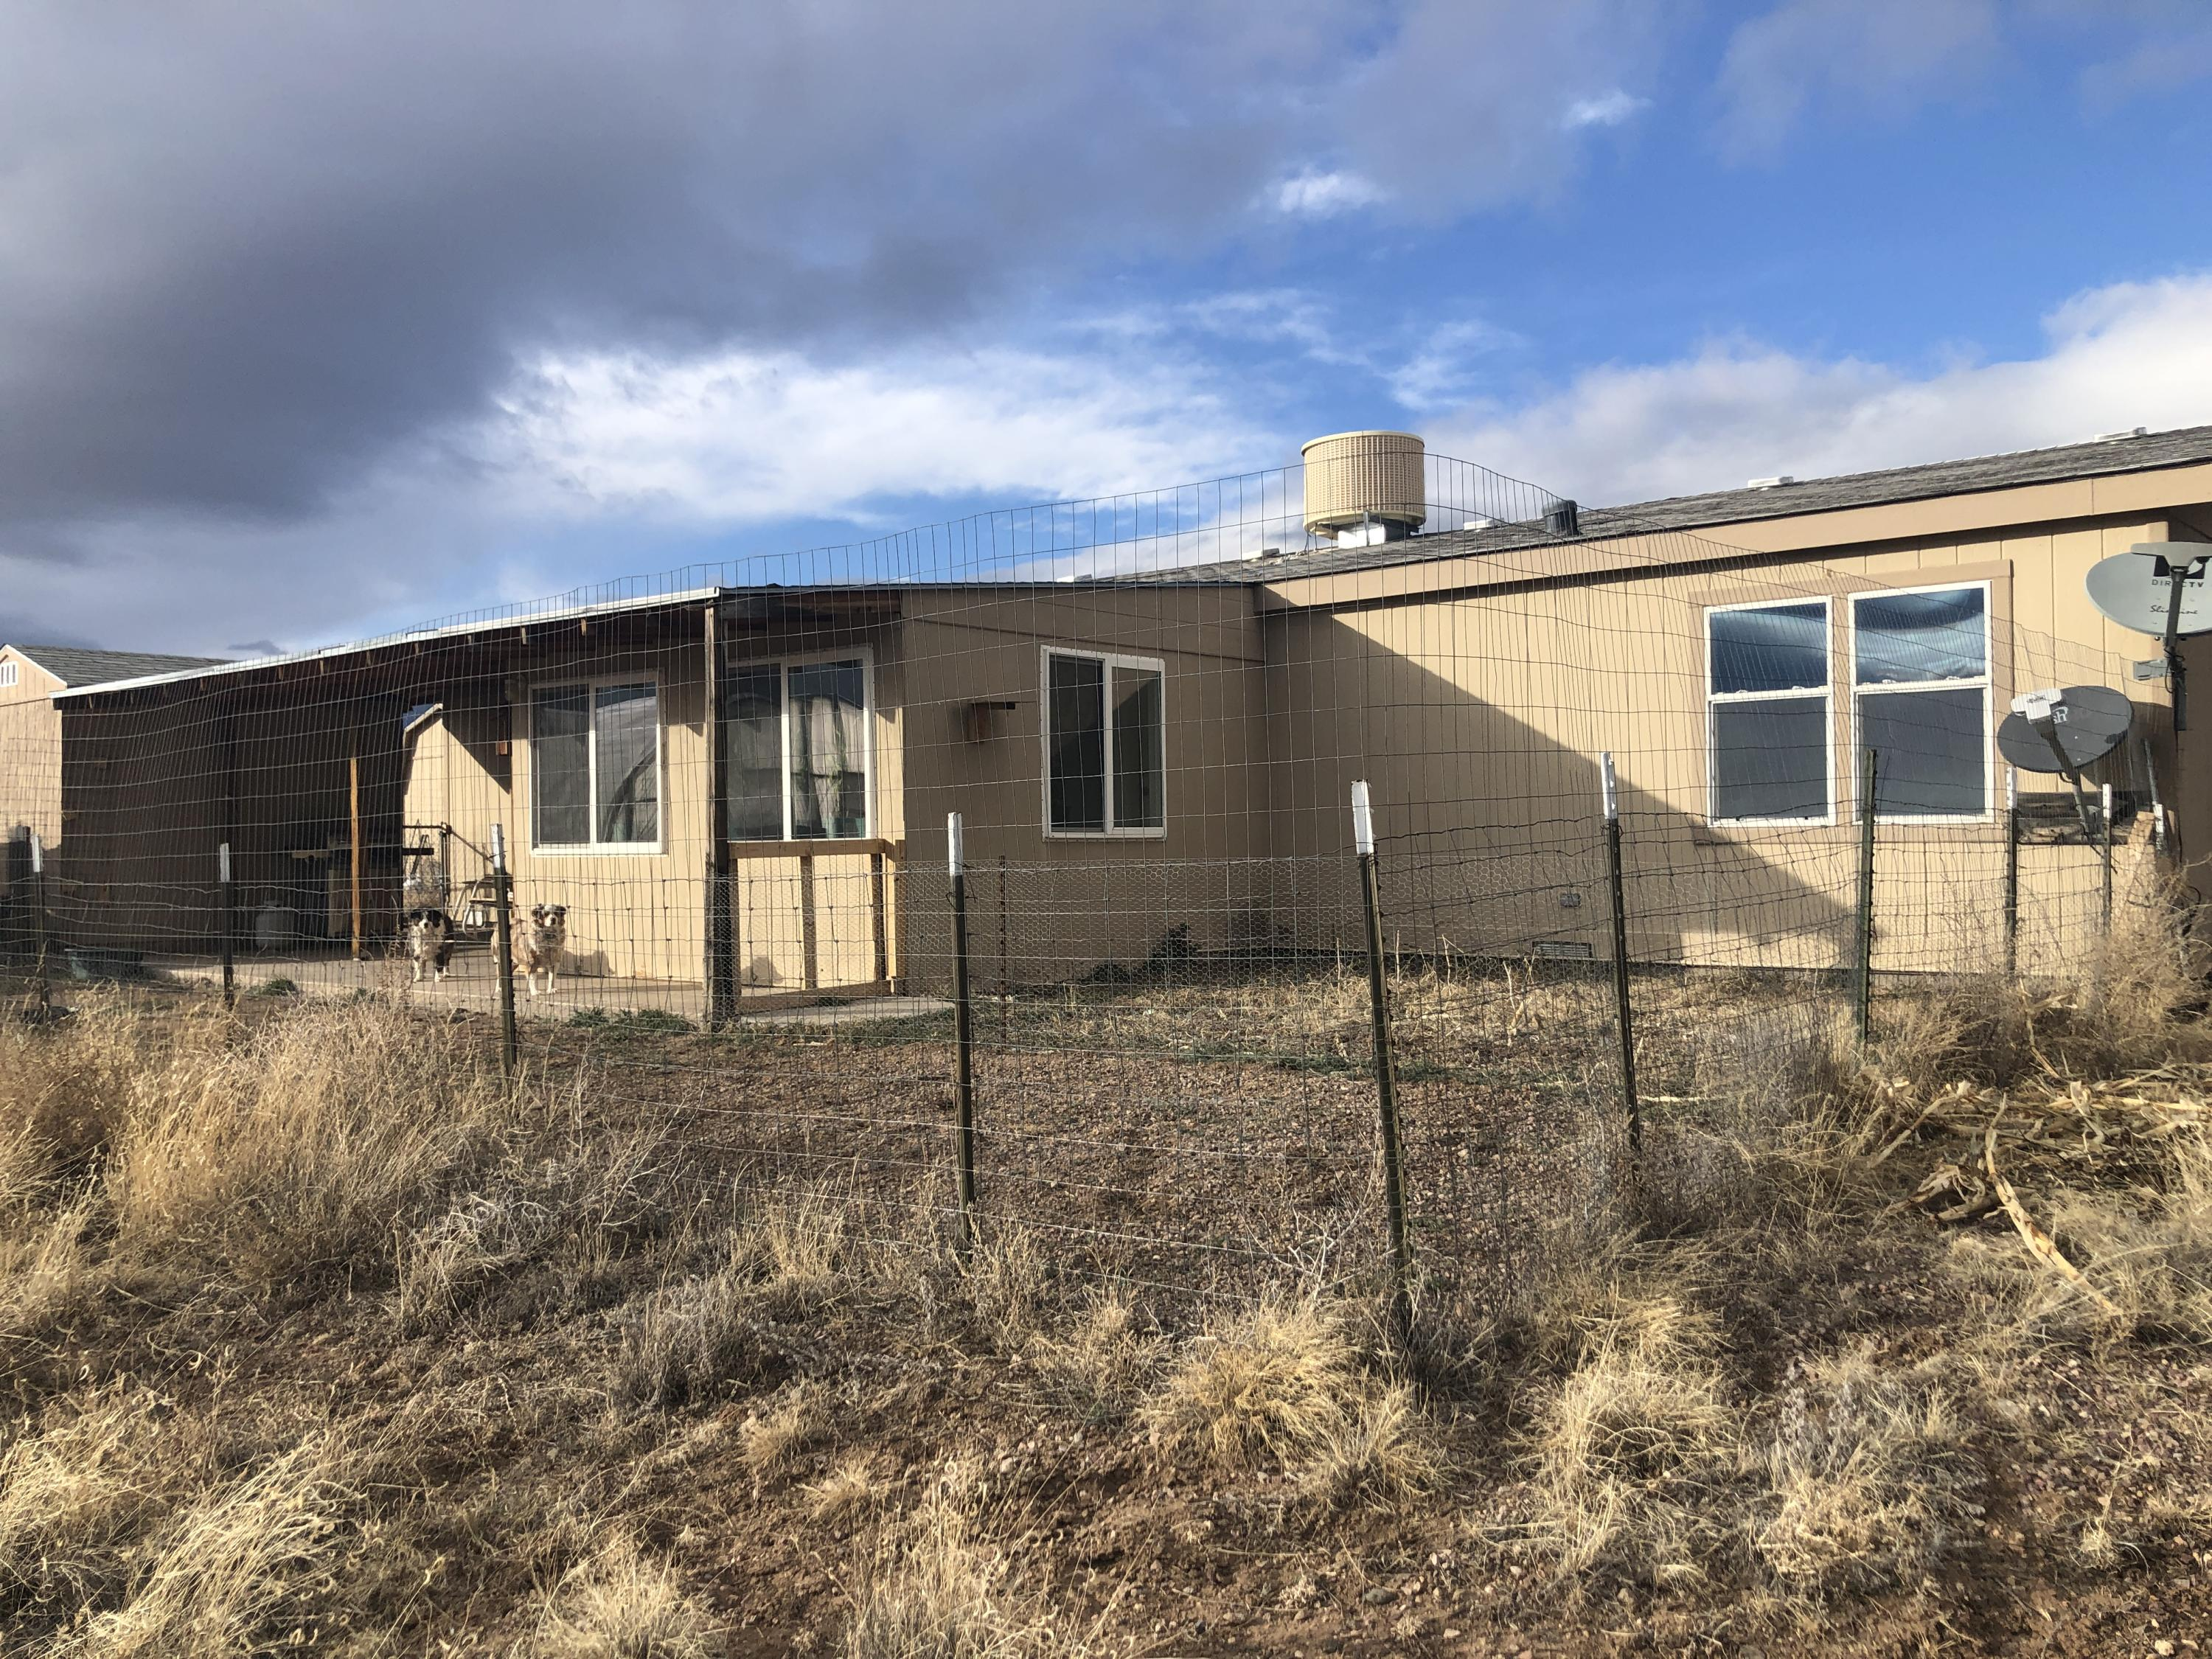 458 SOUTHERN Trail, Datil, NM 87821 - Datil, NM real estate listing